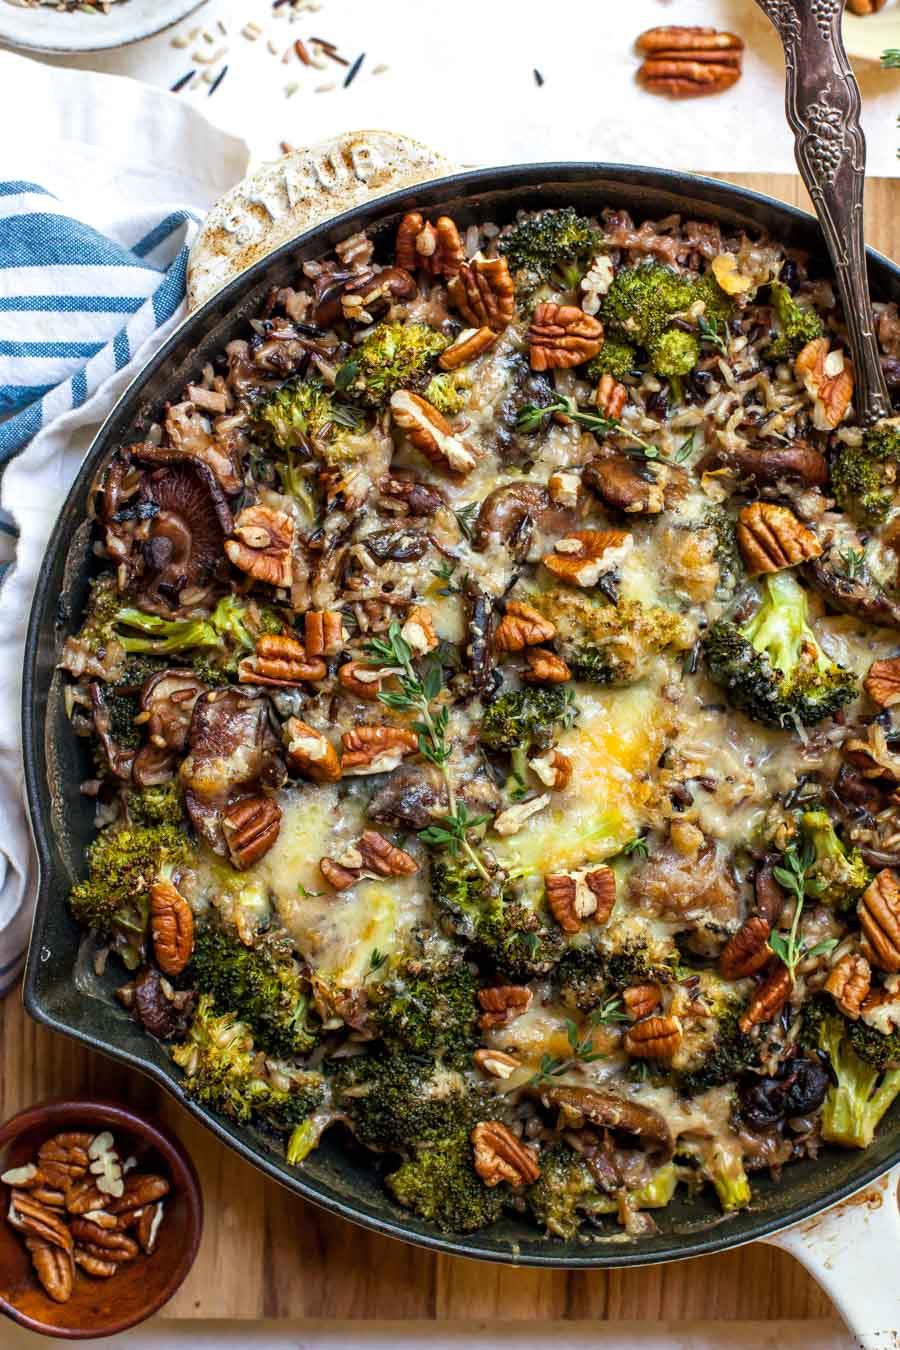 Skillet Rice Casserole with Cheesy Broccoli and Mushrooms